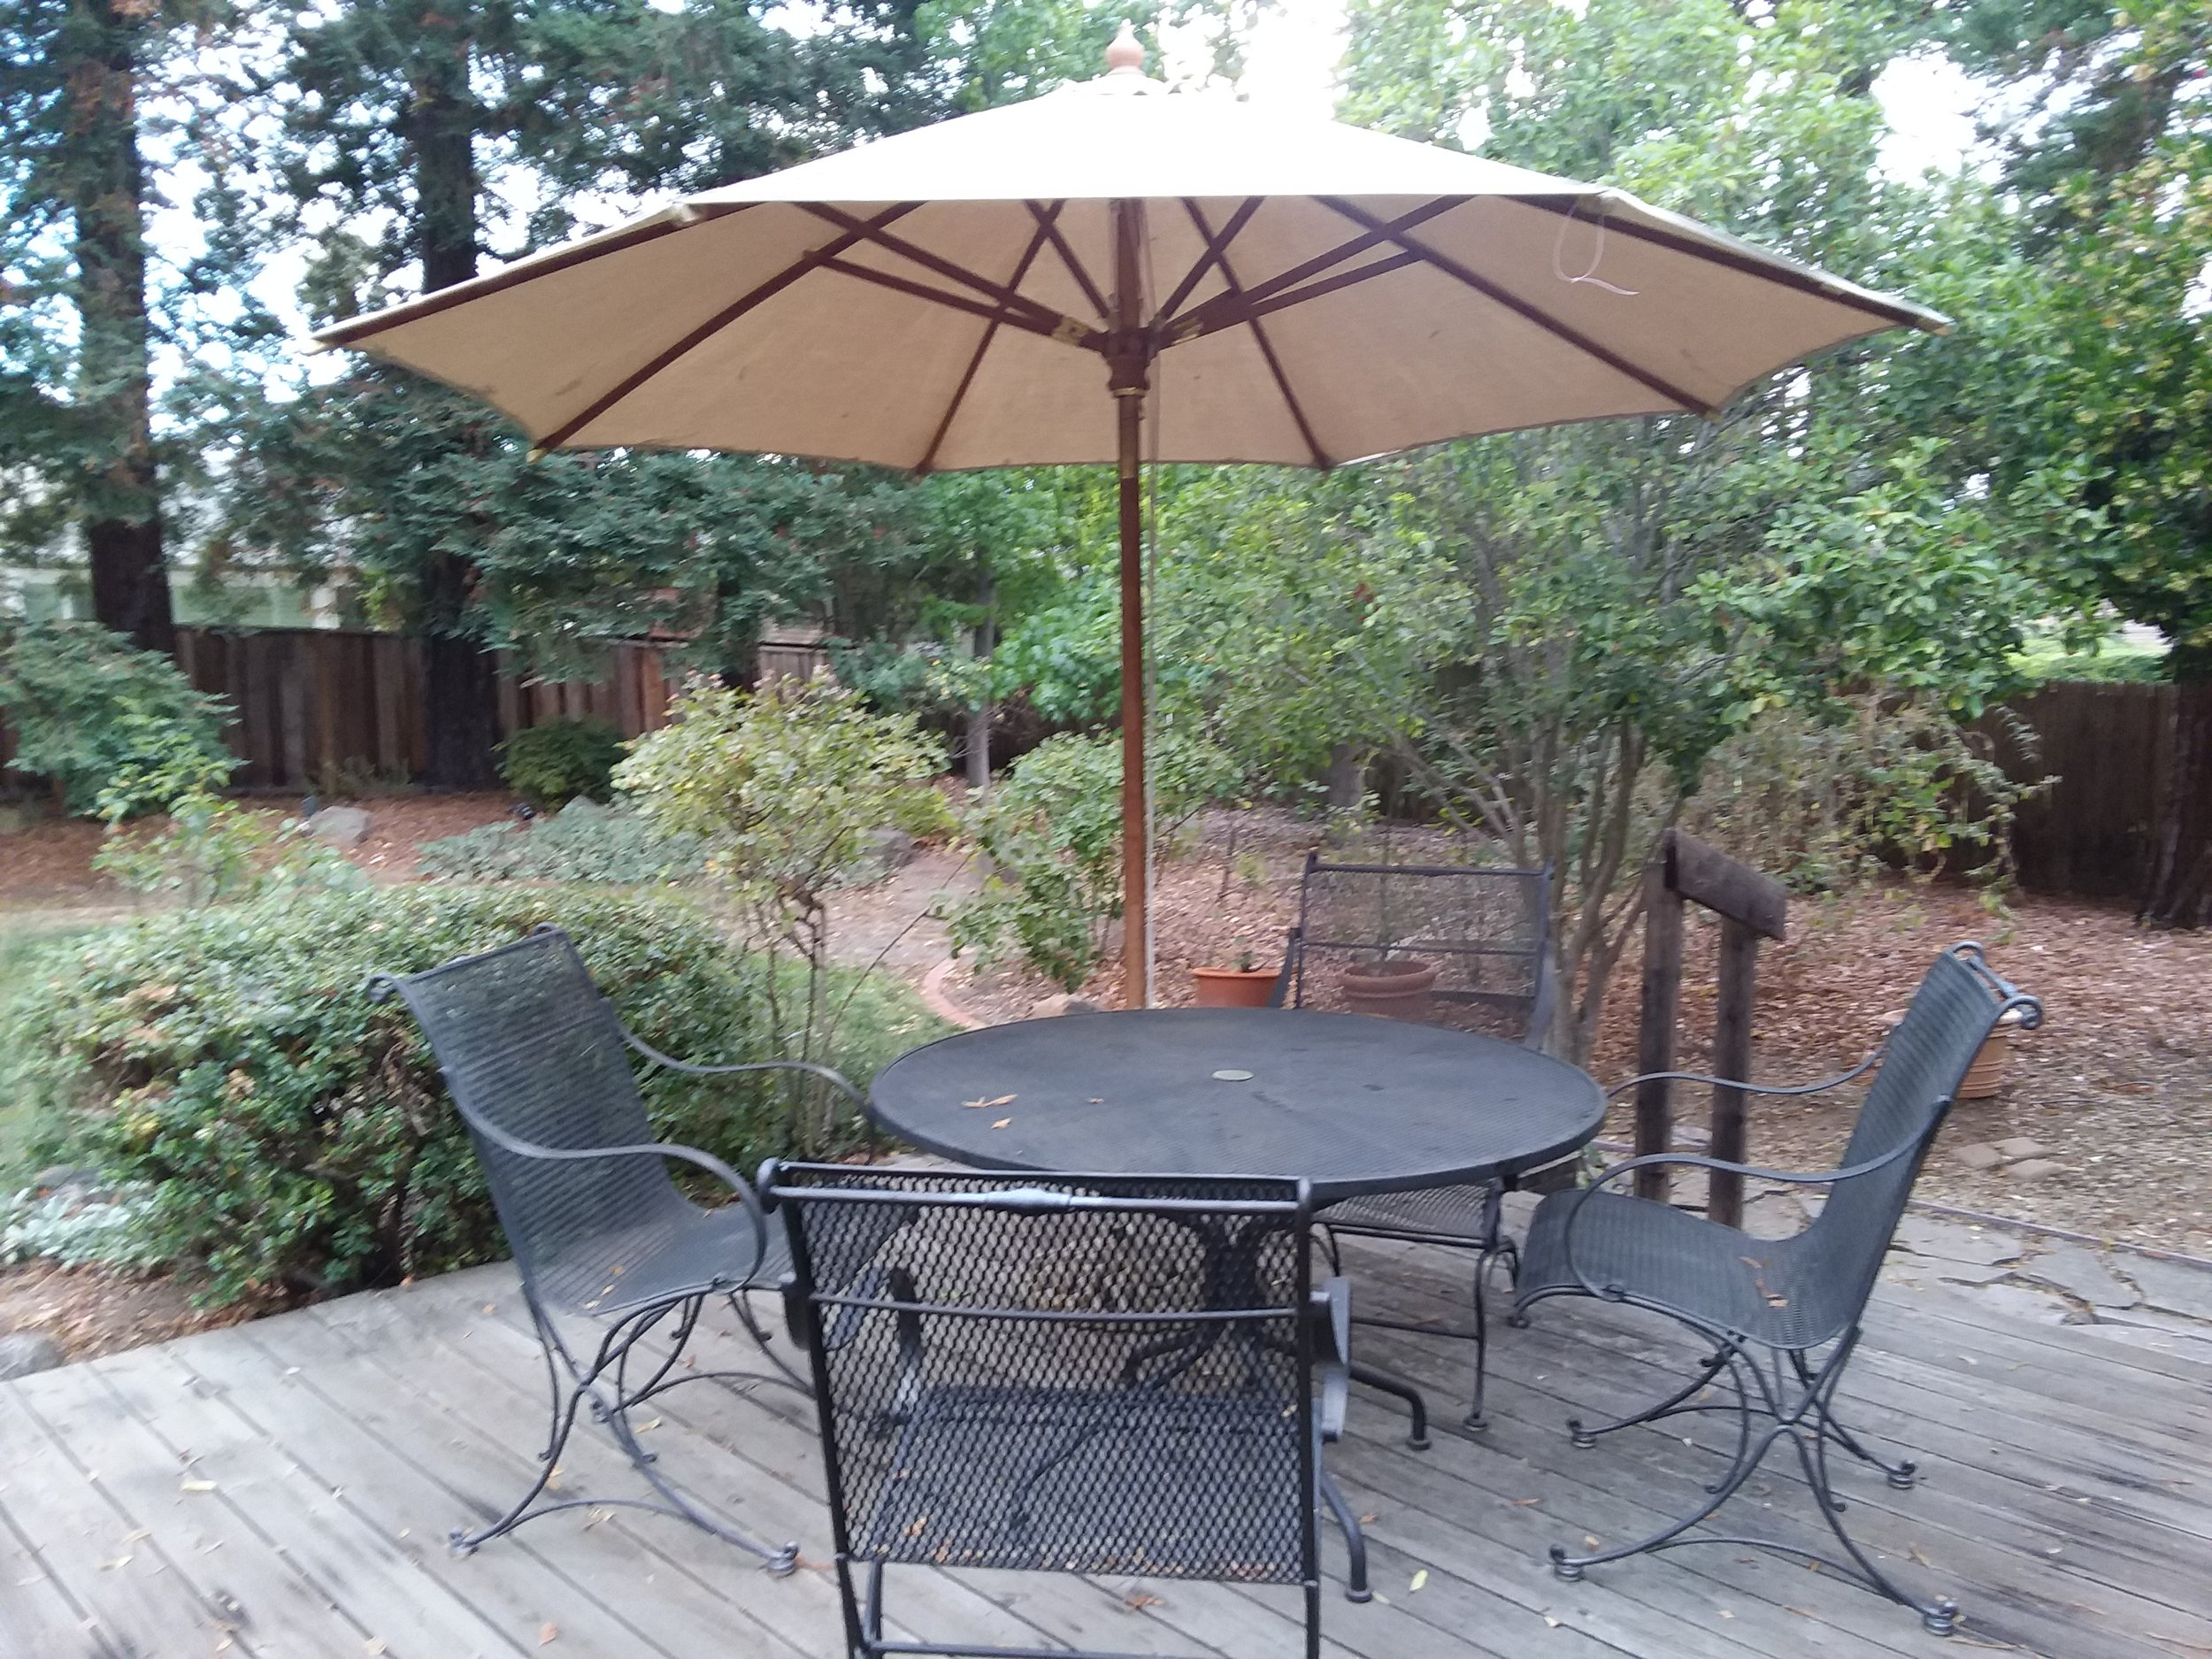 M'Lou Bell Back Deck Table Taken on Mon., Oct. 1, 2018.jpg